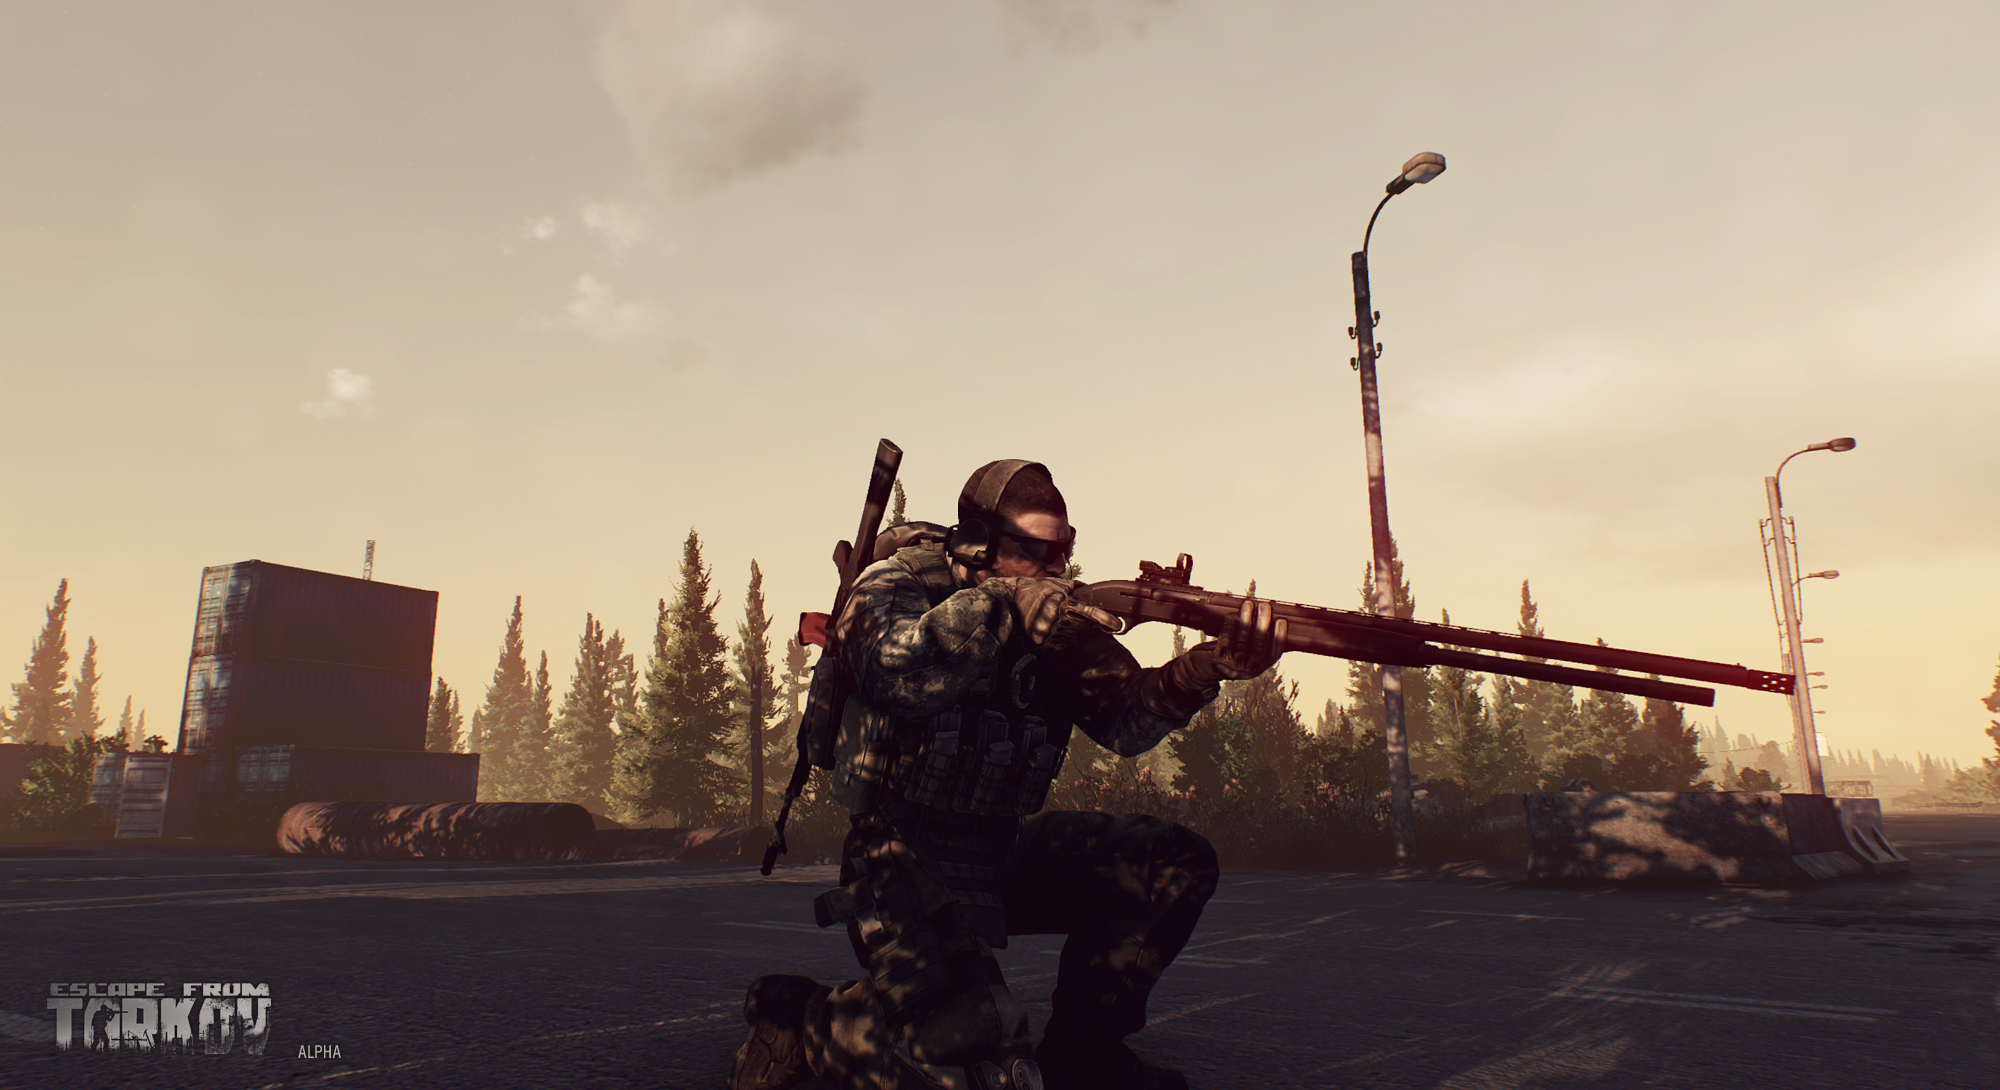 Escape from Tarkov Showcased in New Batch of Screenshots